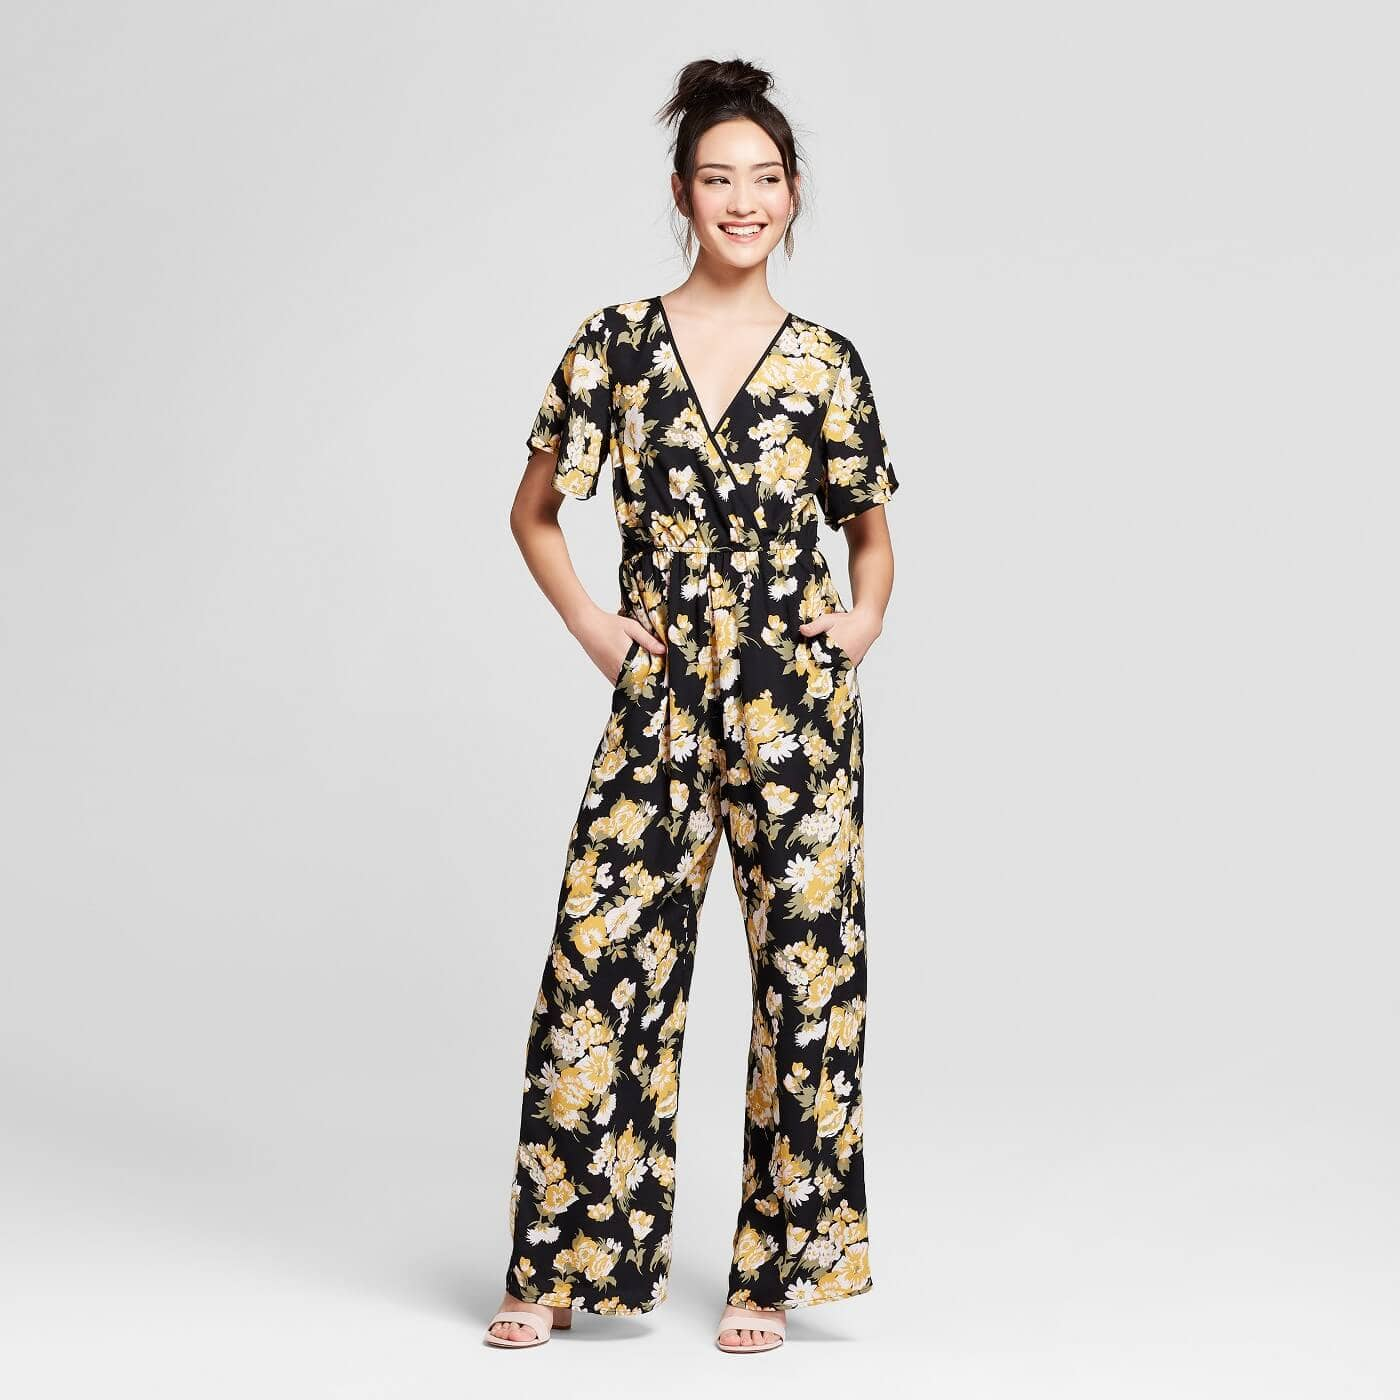 Stylish and Comfortable Jumpsuit for Mom